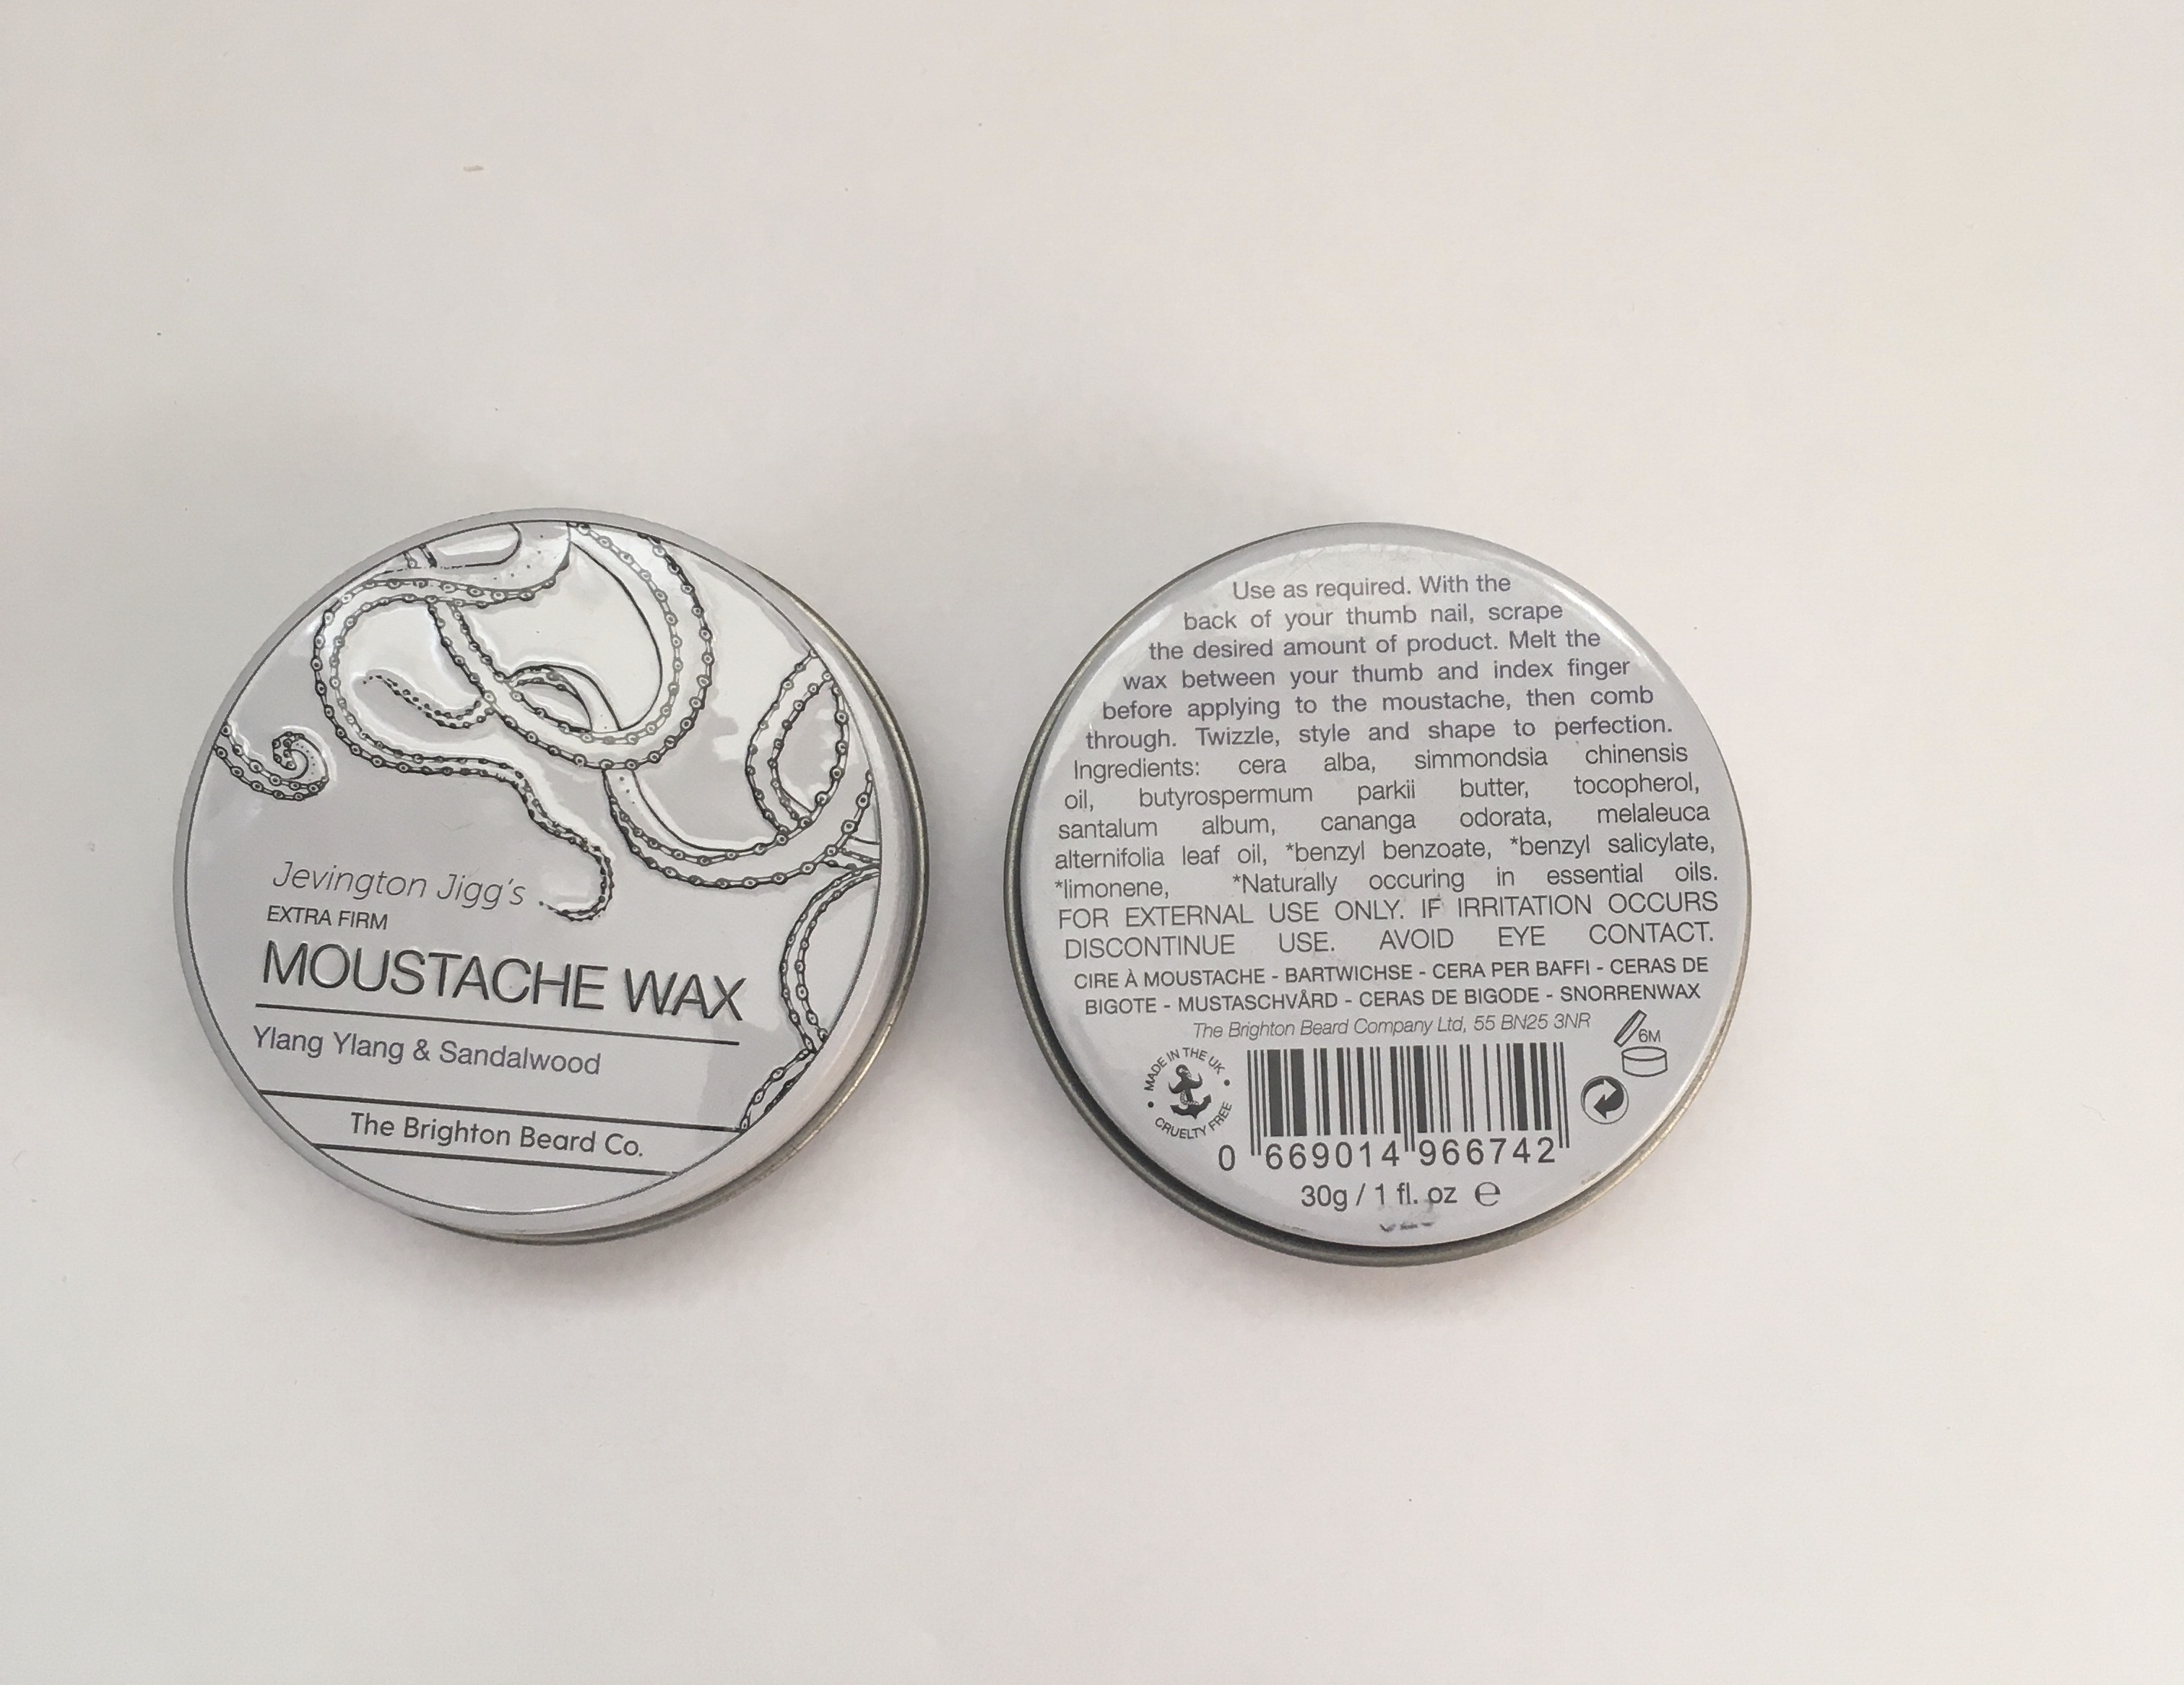 Moustache wax extra firm 30g ylang ylang & sandalwood